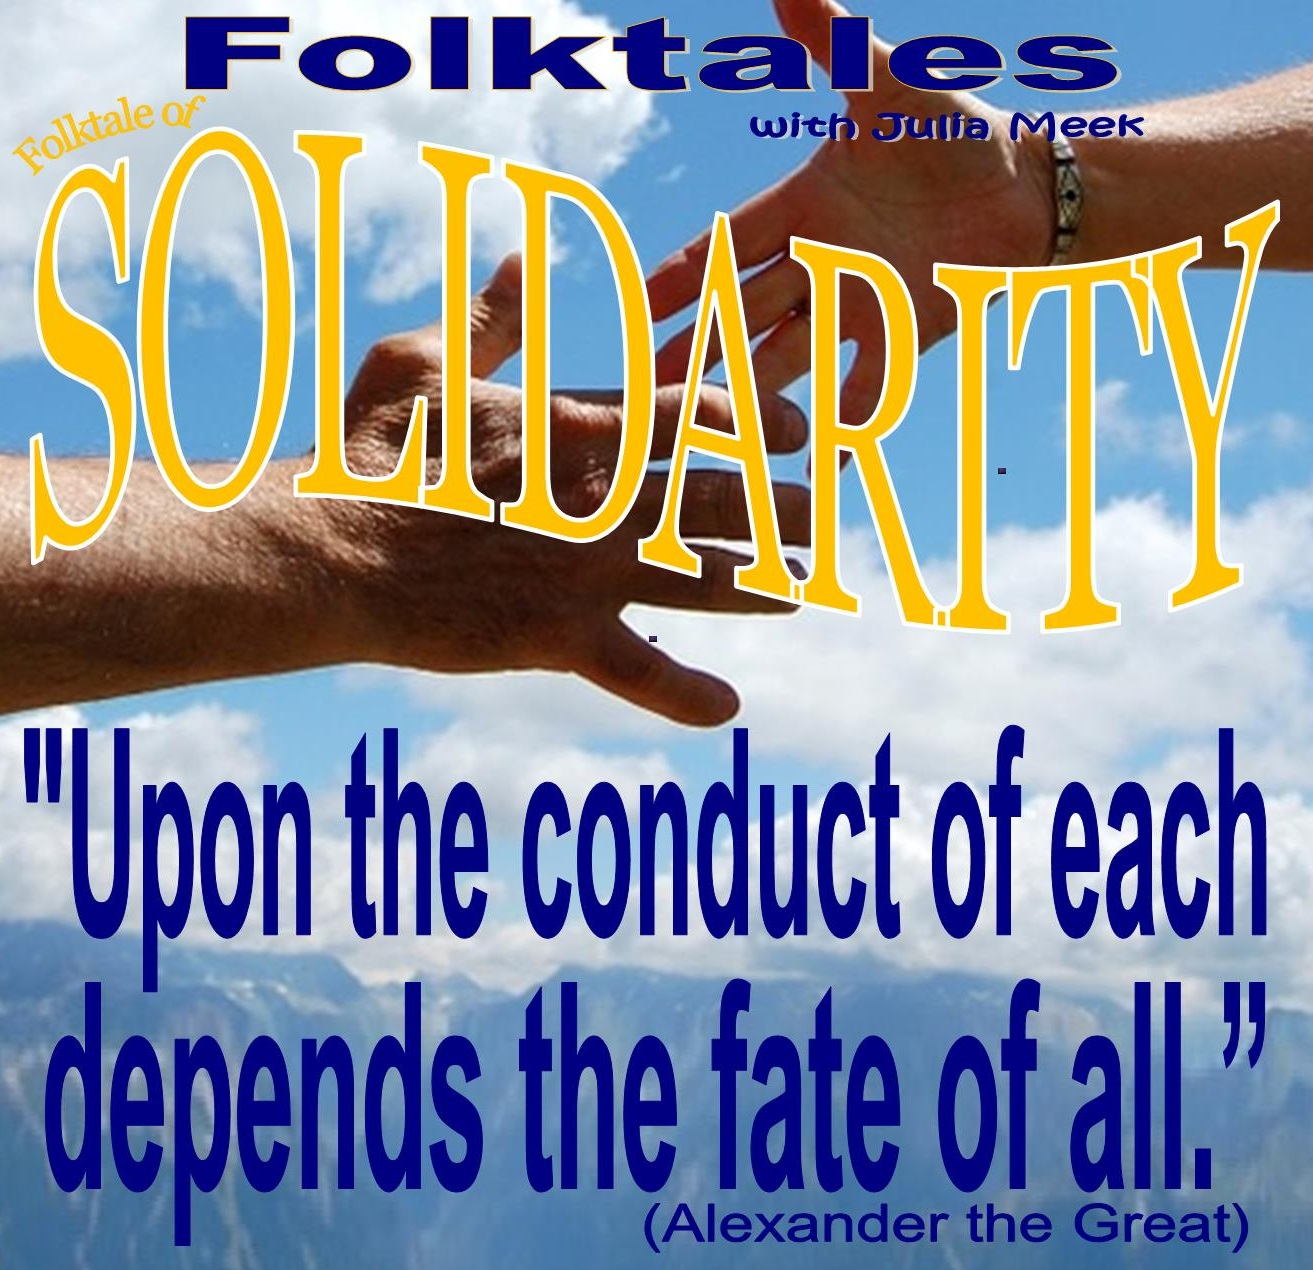 Caption: WBOI's Folktale of Solidarity, Credit: Julia Meek